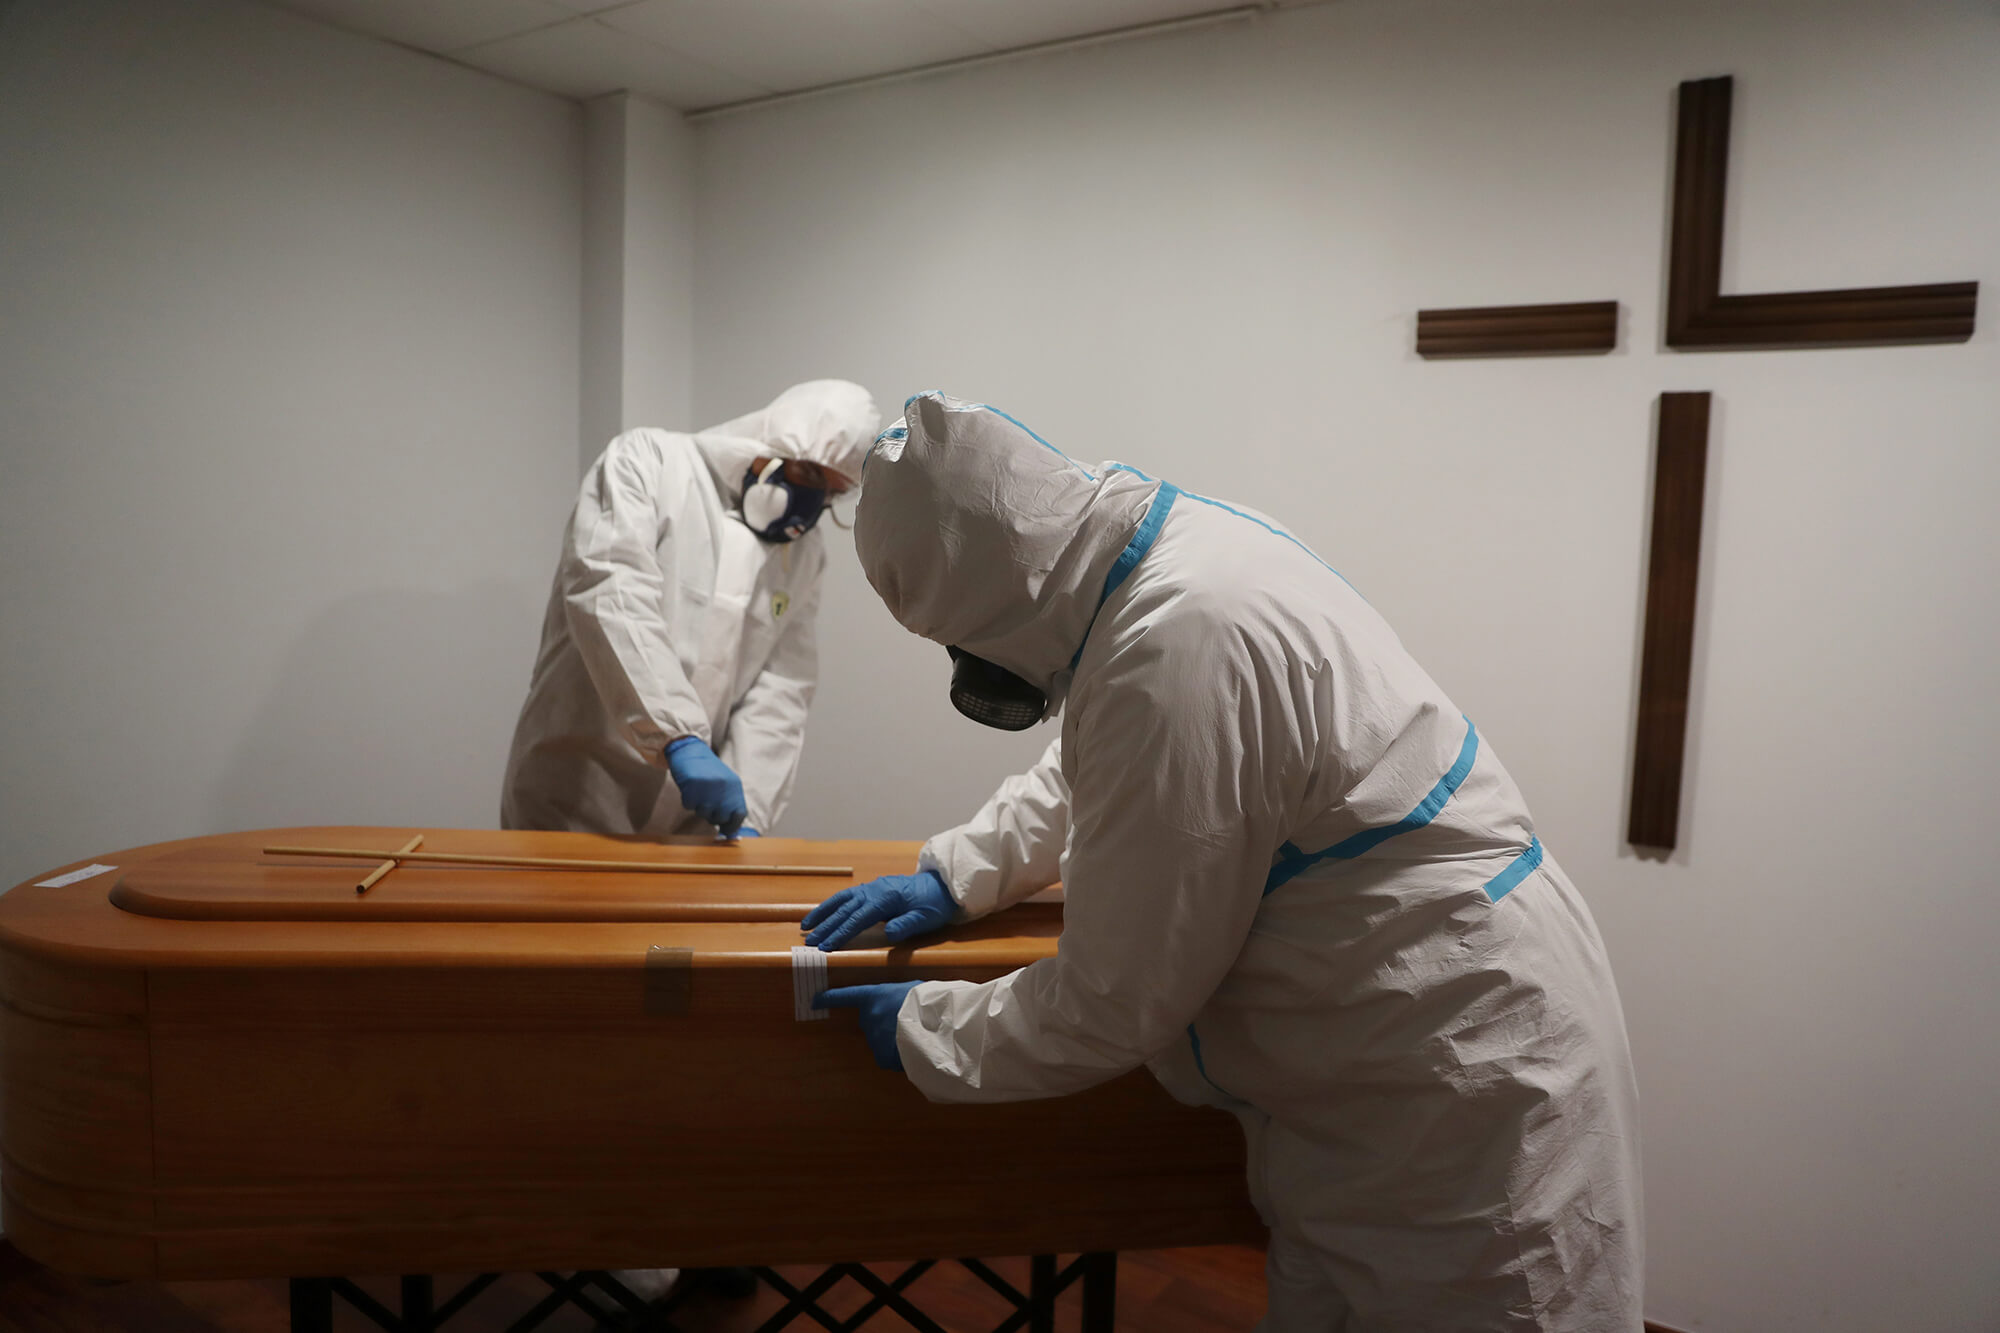 Mortuary workers wearing protective gear are seen at the San Juan de la Cruz funeral home, amid the coronavirus disease outbreak.